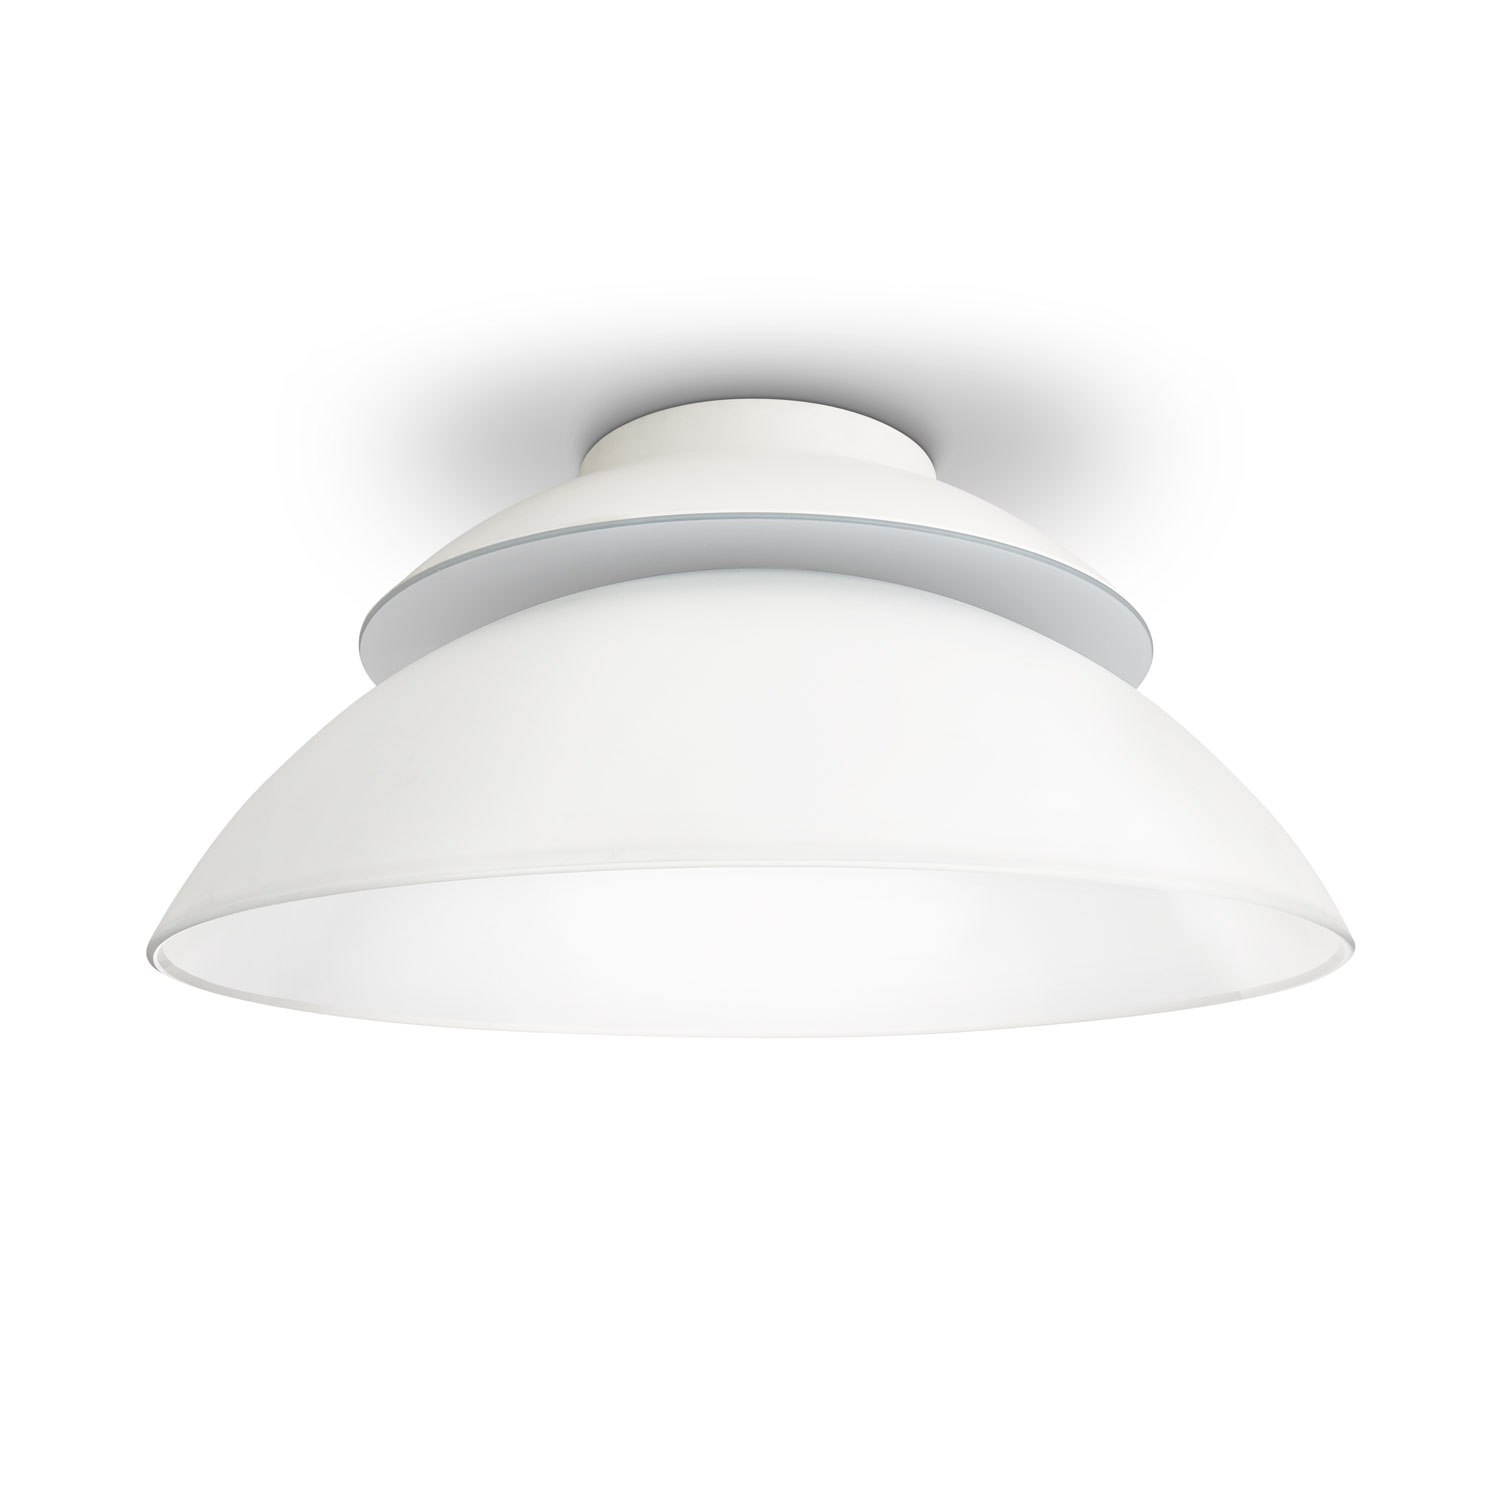 LD0003435717 2 5 Luxe Plafonnier Ampoule Uqw1